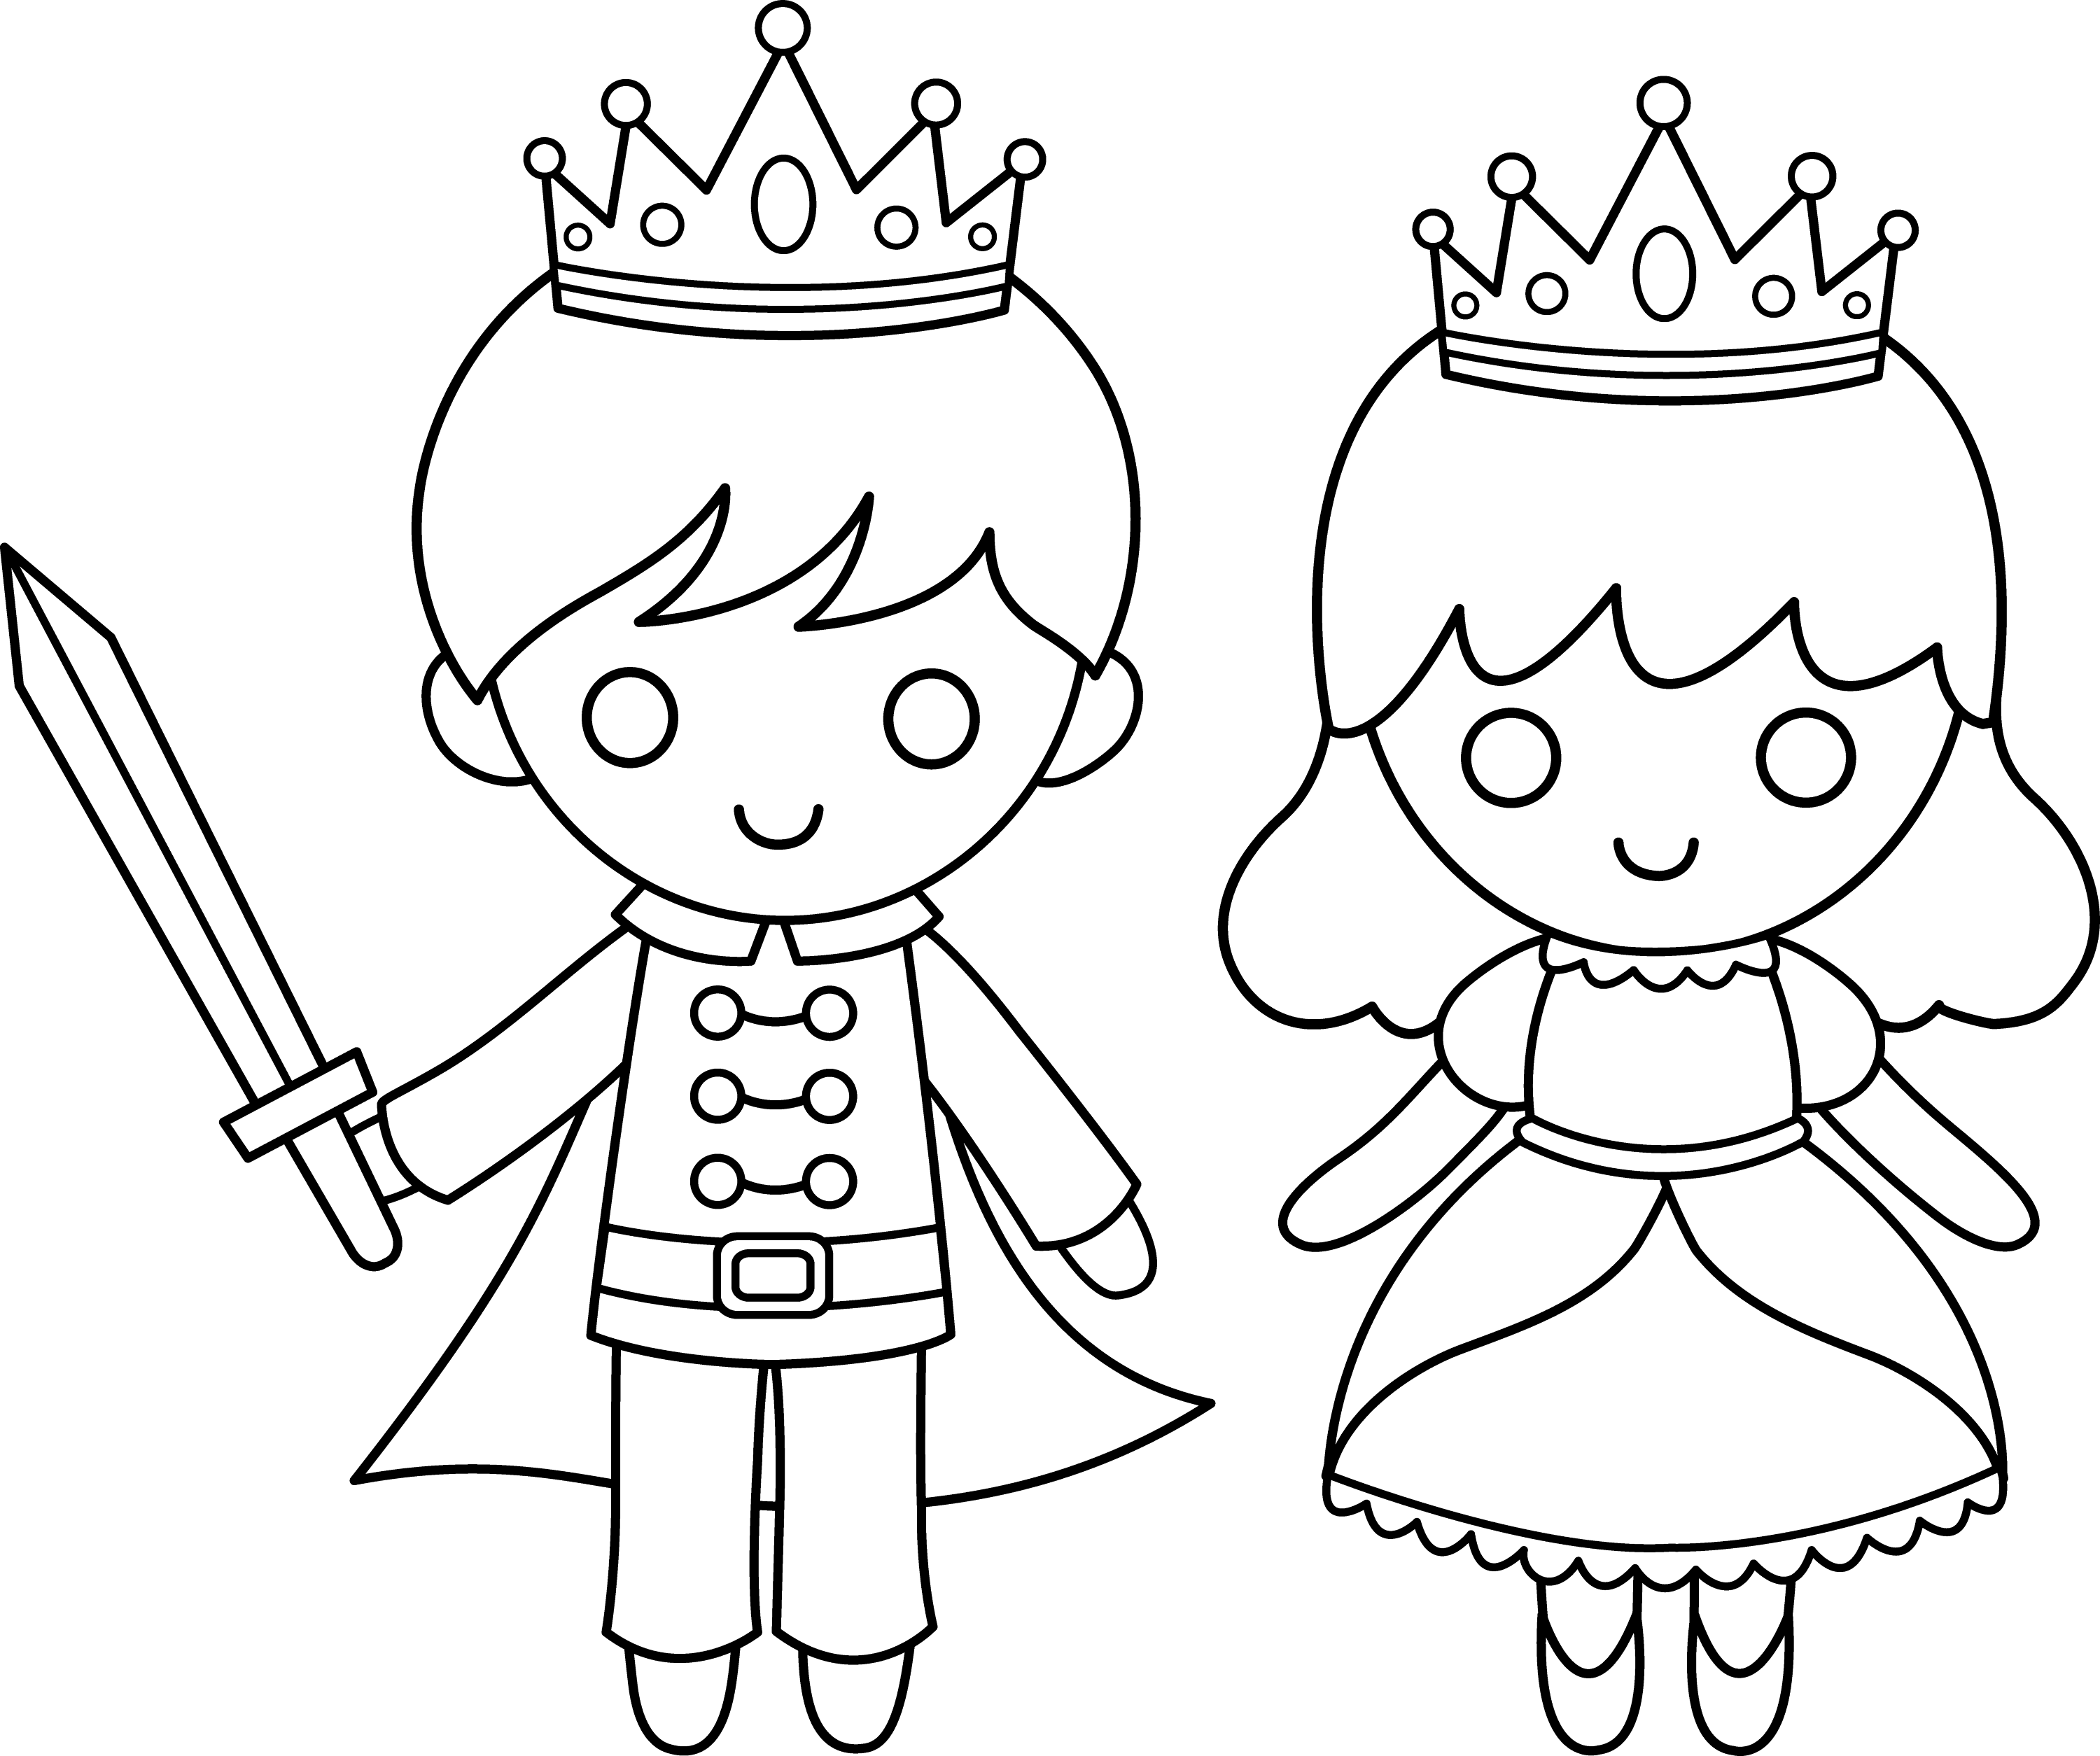 prince and princess coloring pages - photo#2